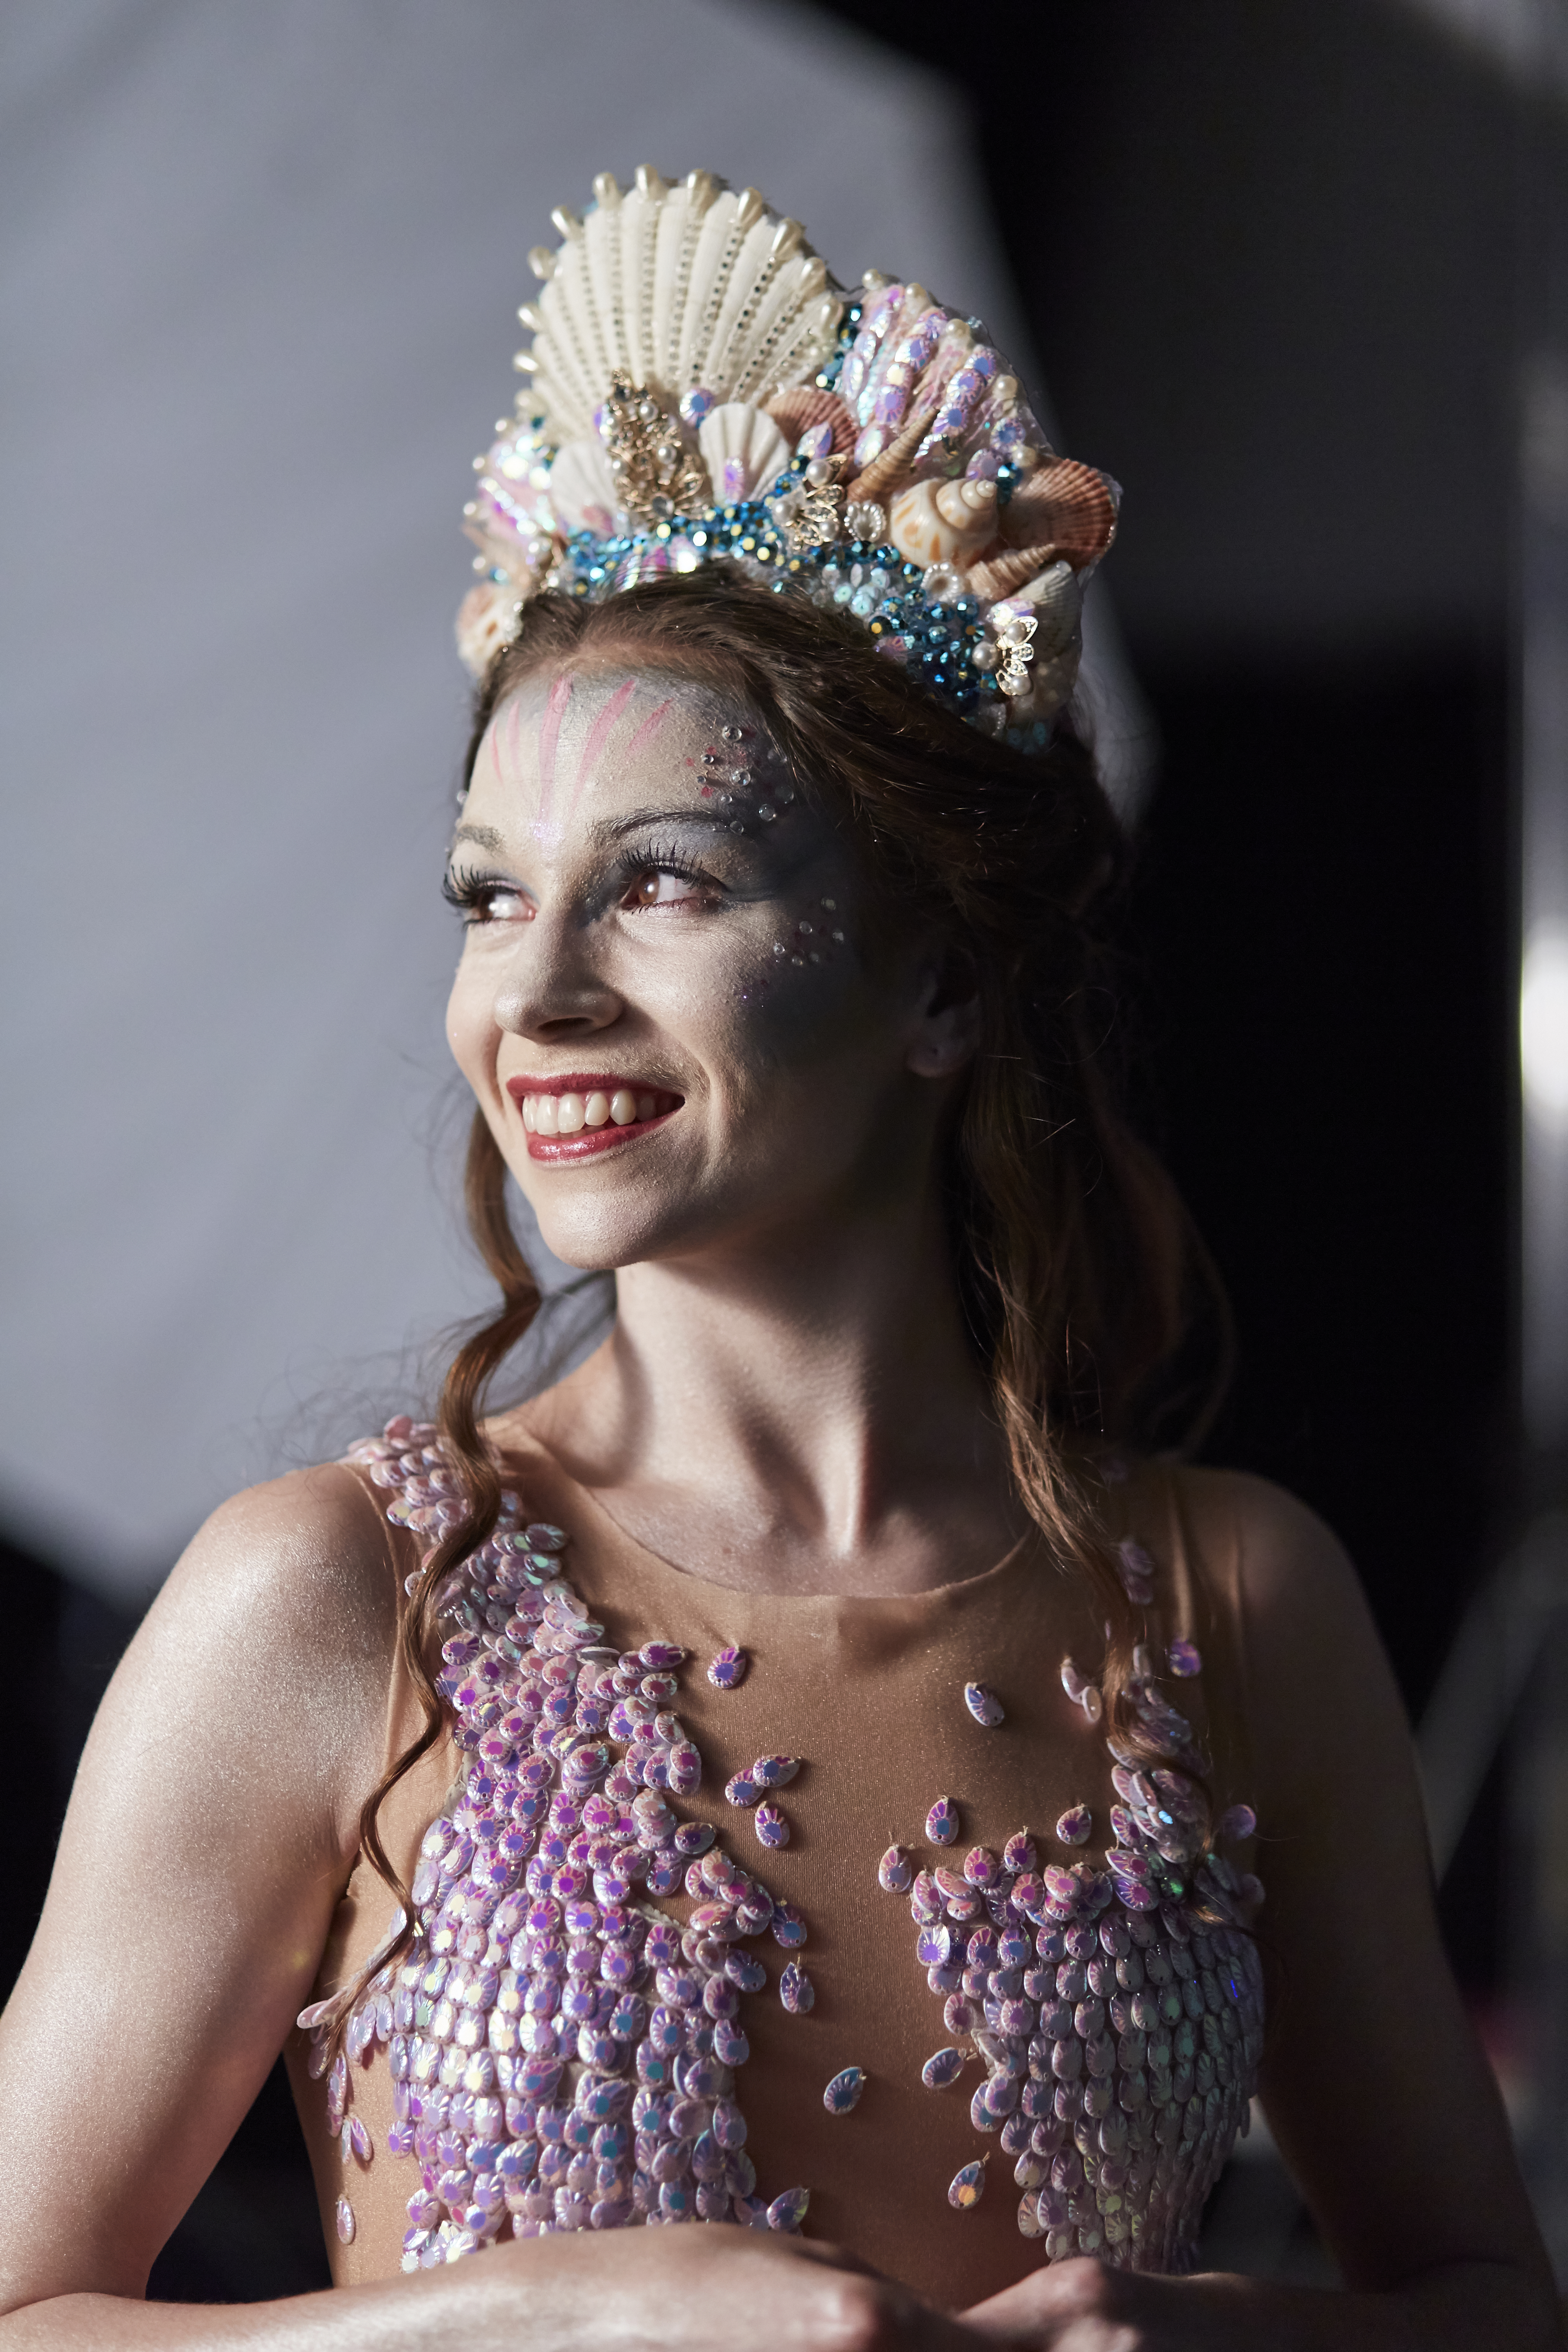 Northern Ballet dancer Abigail Prudames as the title character in The Little Mermaid.